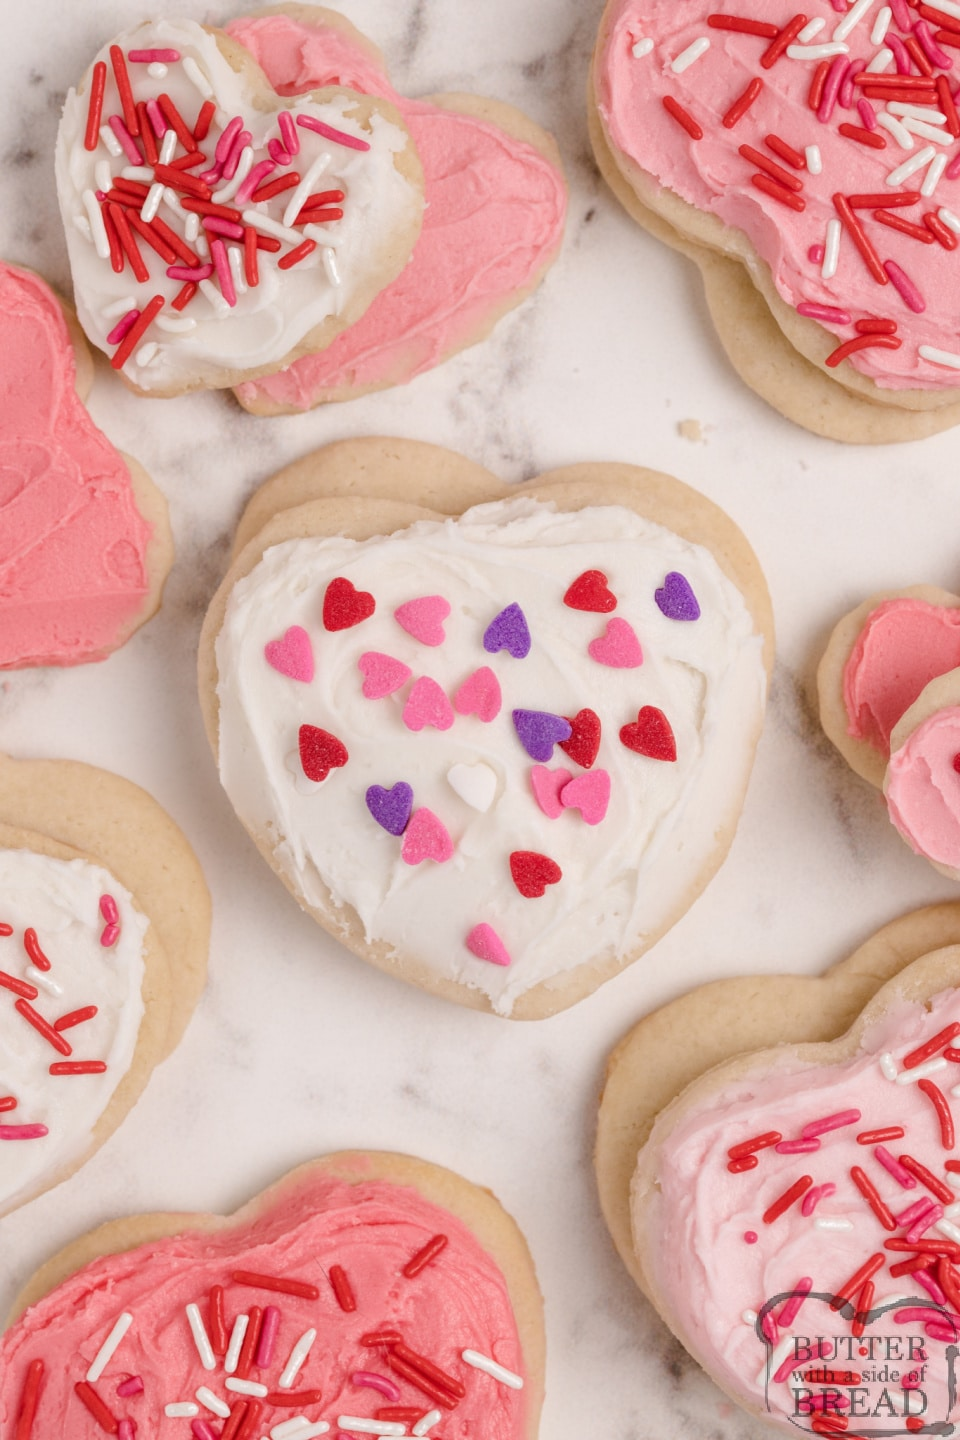 Valentines Sugar Cookies are soft, thick and easily the best sugar cookie recipe I've ever tried. These cream cheese sugar cookies are perfectly sweet and they hold their shape when baked!